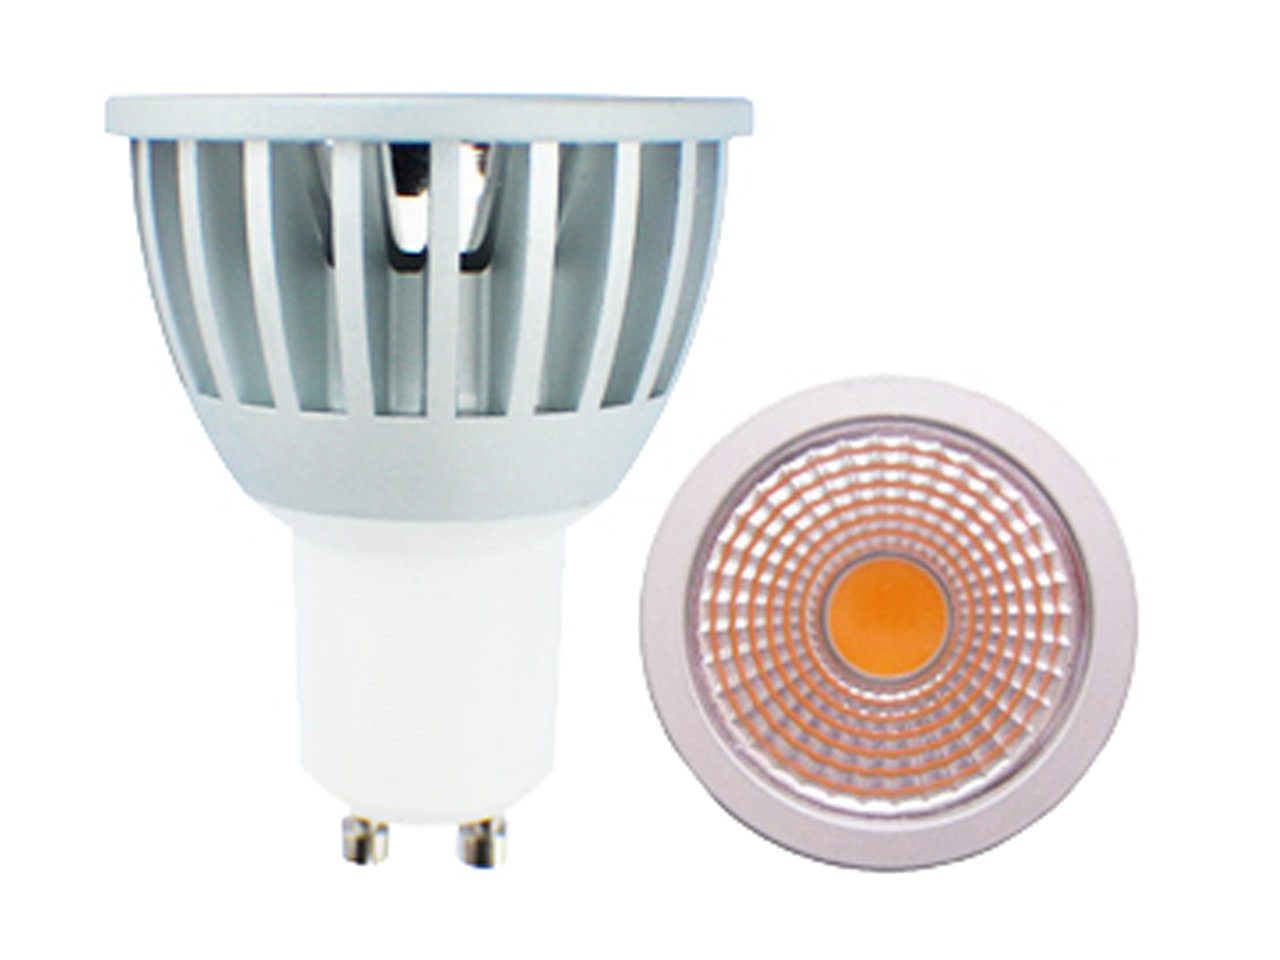 Led Spots Dimmbar Led Spot Gu10 7w 620lm 30 Warmweiss Dimmbar Led Lampen